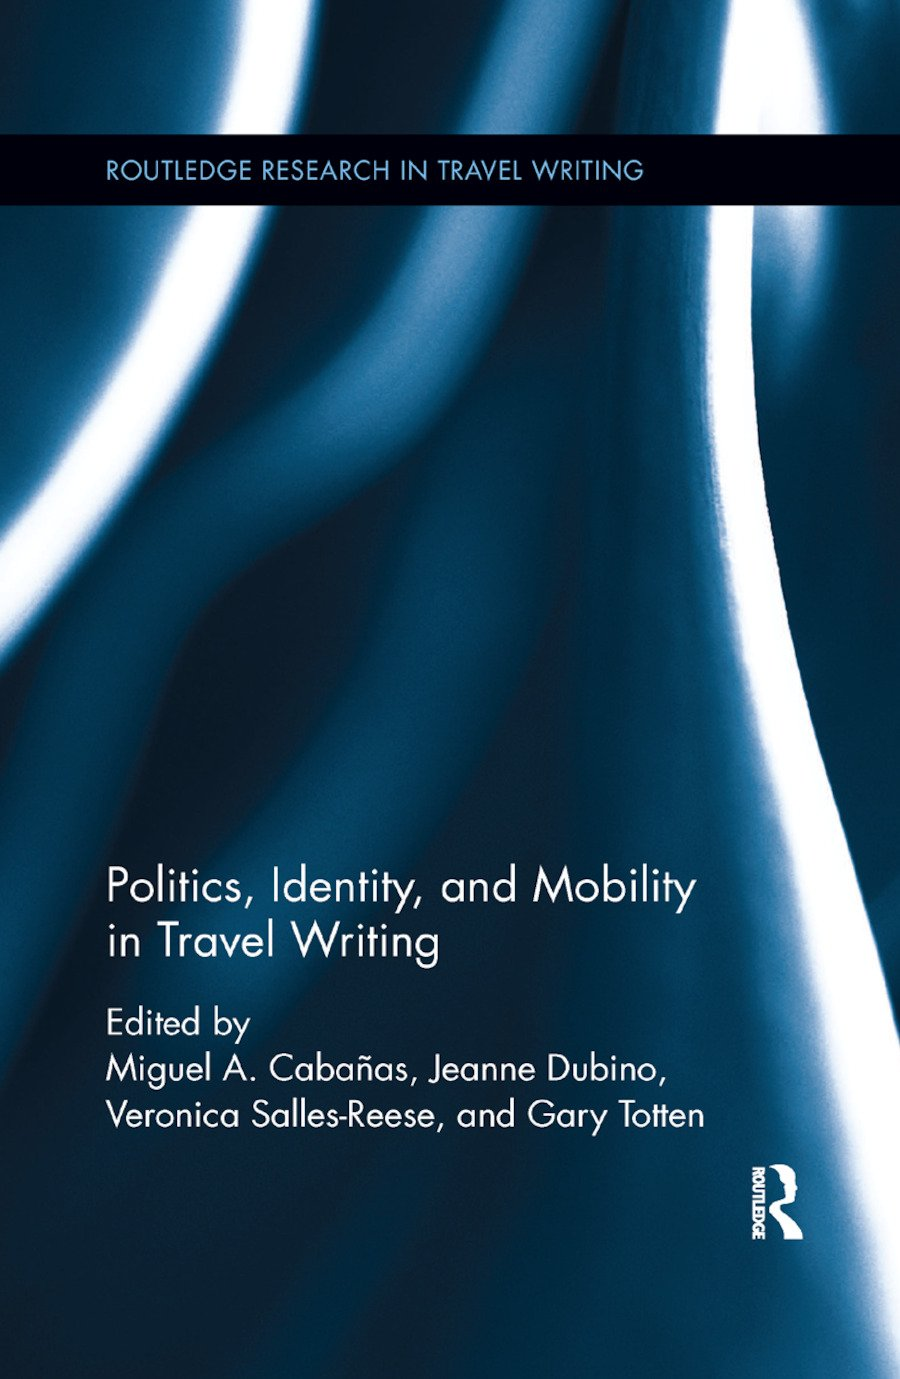 Politics, Identity, and Mobility in Travel Writing book cover